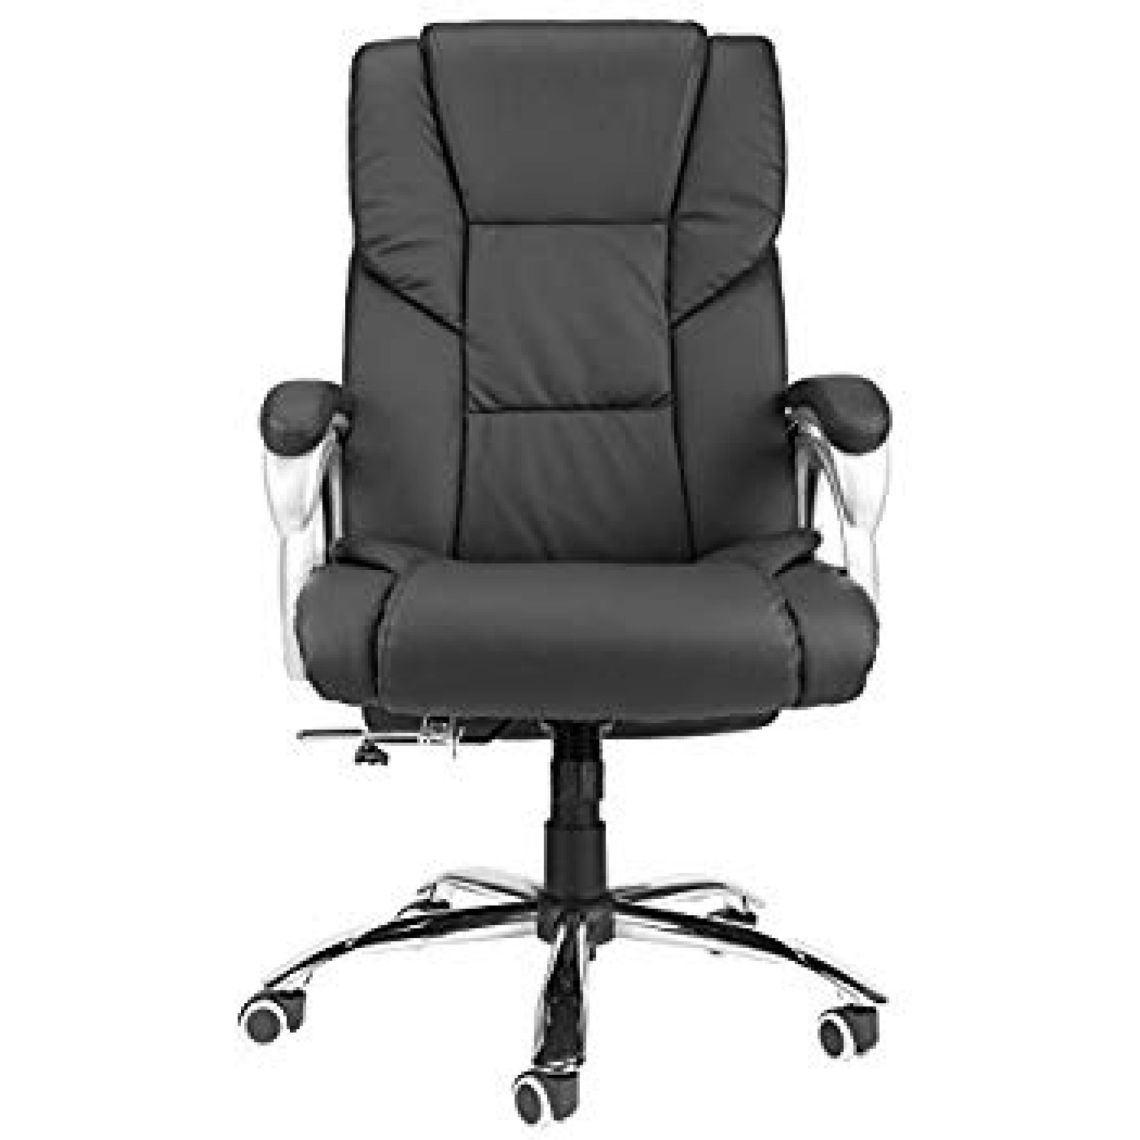 Amazon.com: Upgraded Wide Seat High Back PU Executive Reclining Swivel Comfortable Home Office Desk Chair: Kitchen & Dining